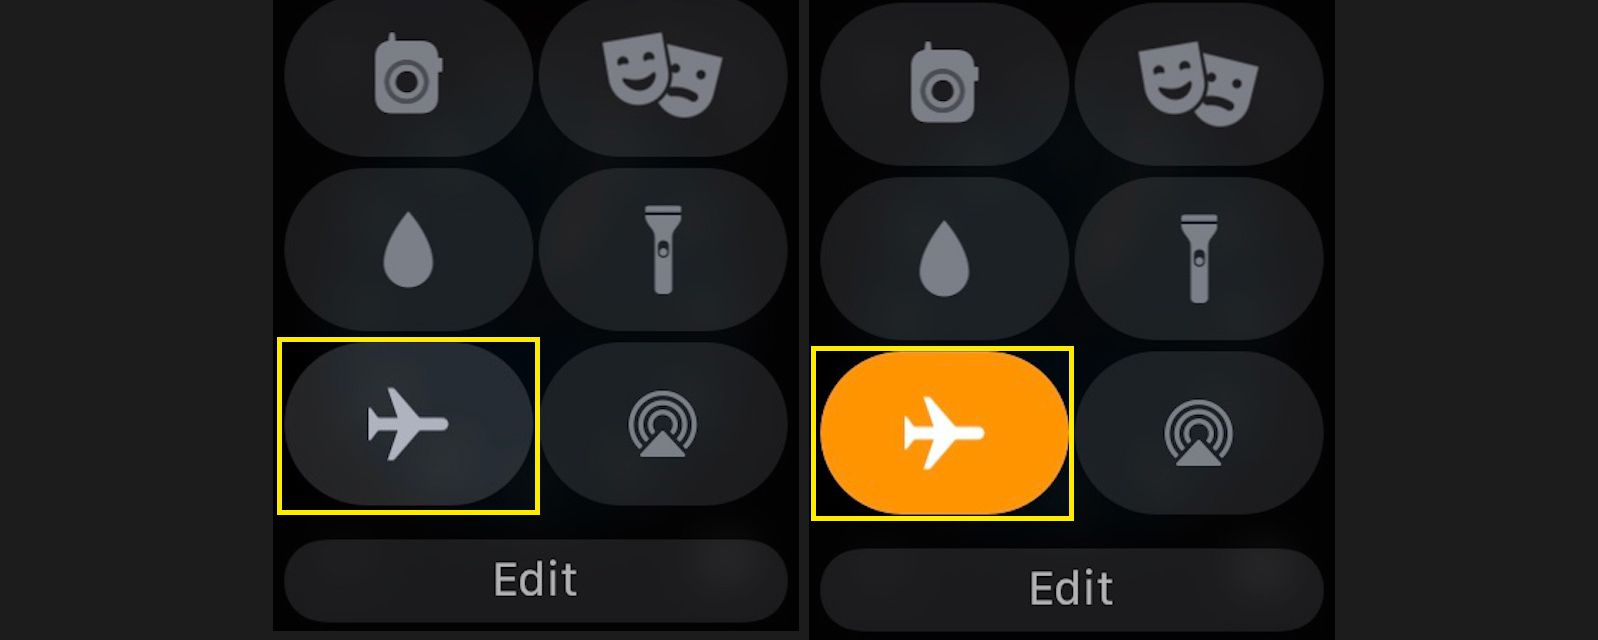 Tap Airplane Mode to switch off your cellular connection and shut down Wi-Fi.